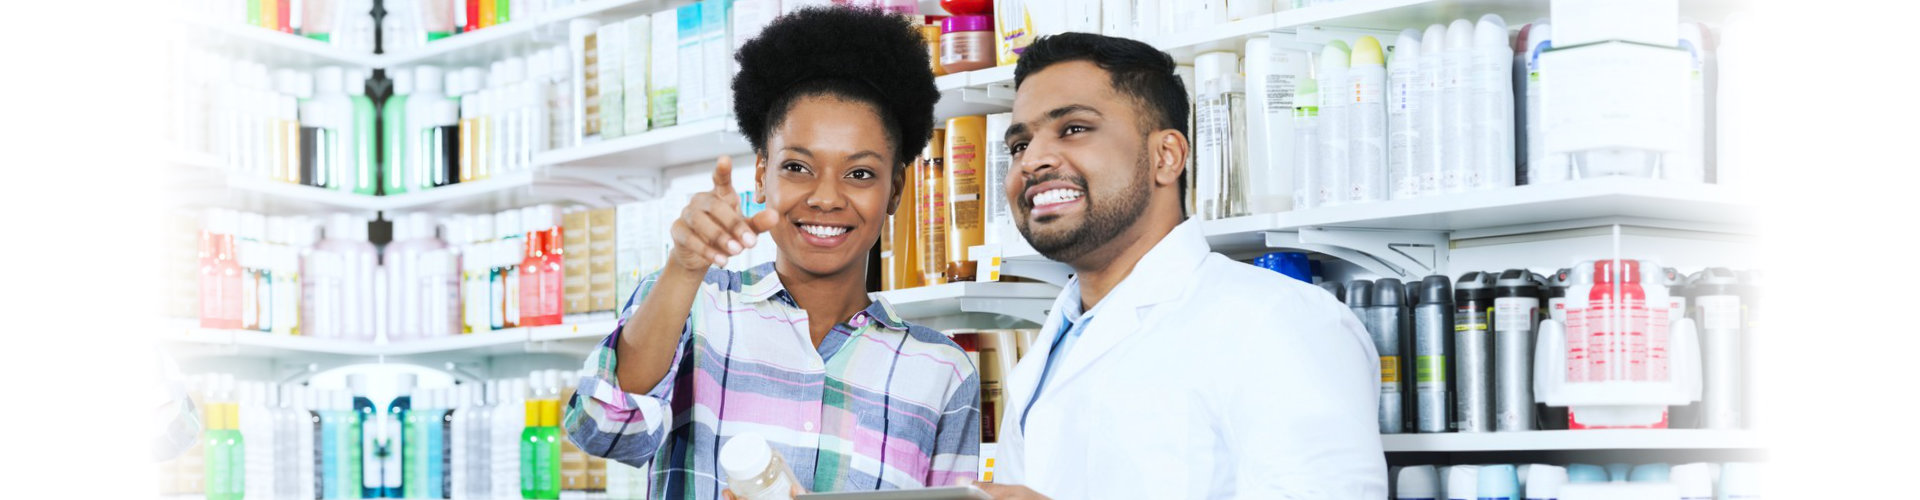 a pharmacist and a customer talking